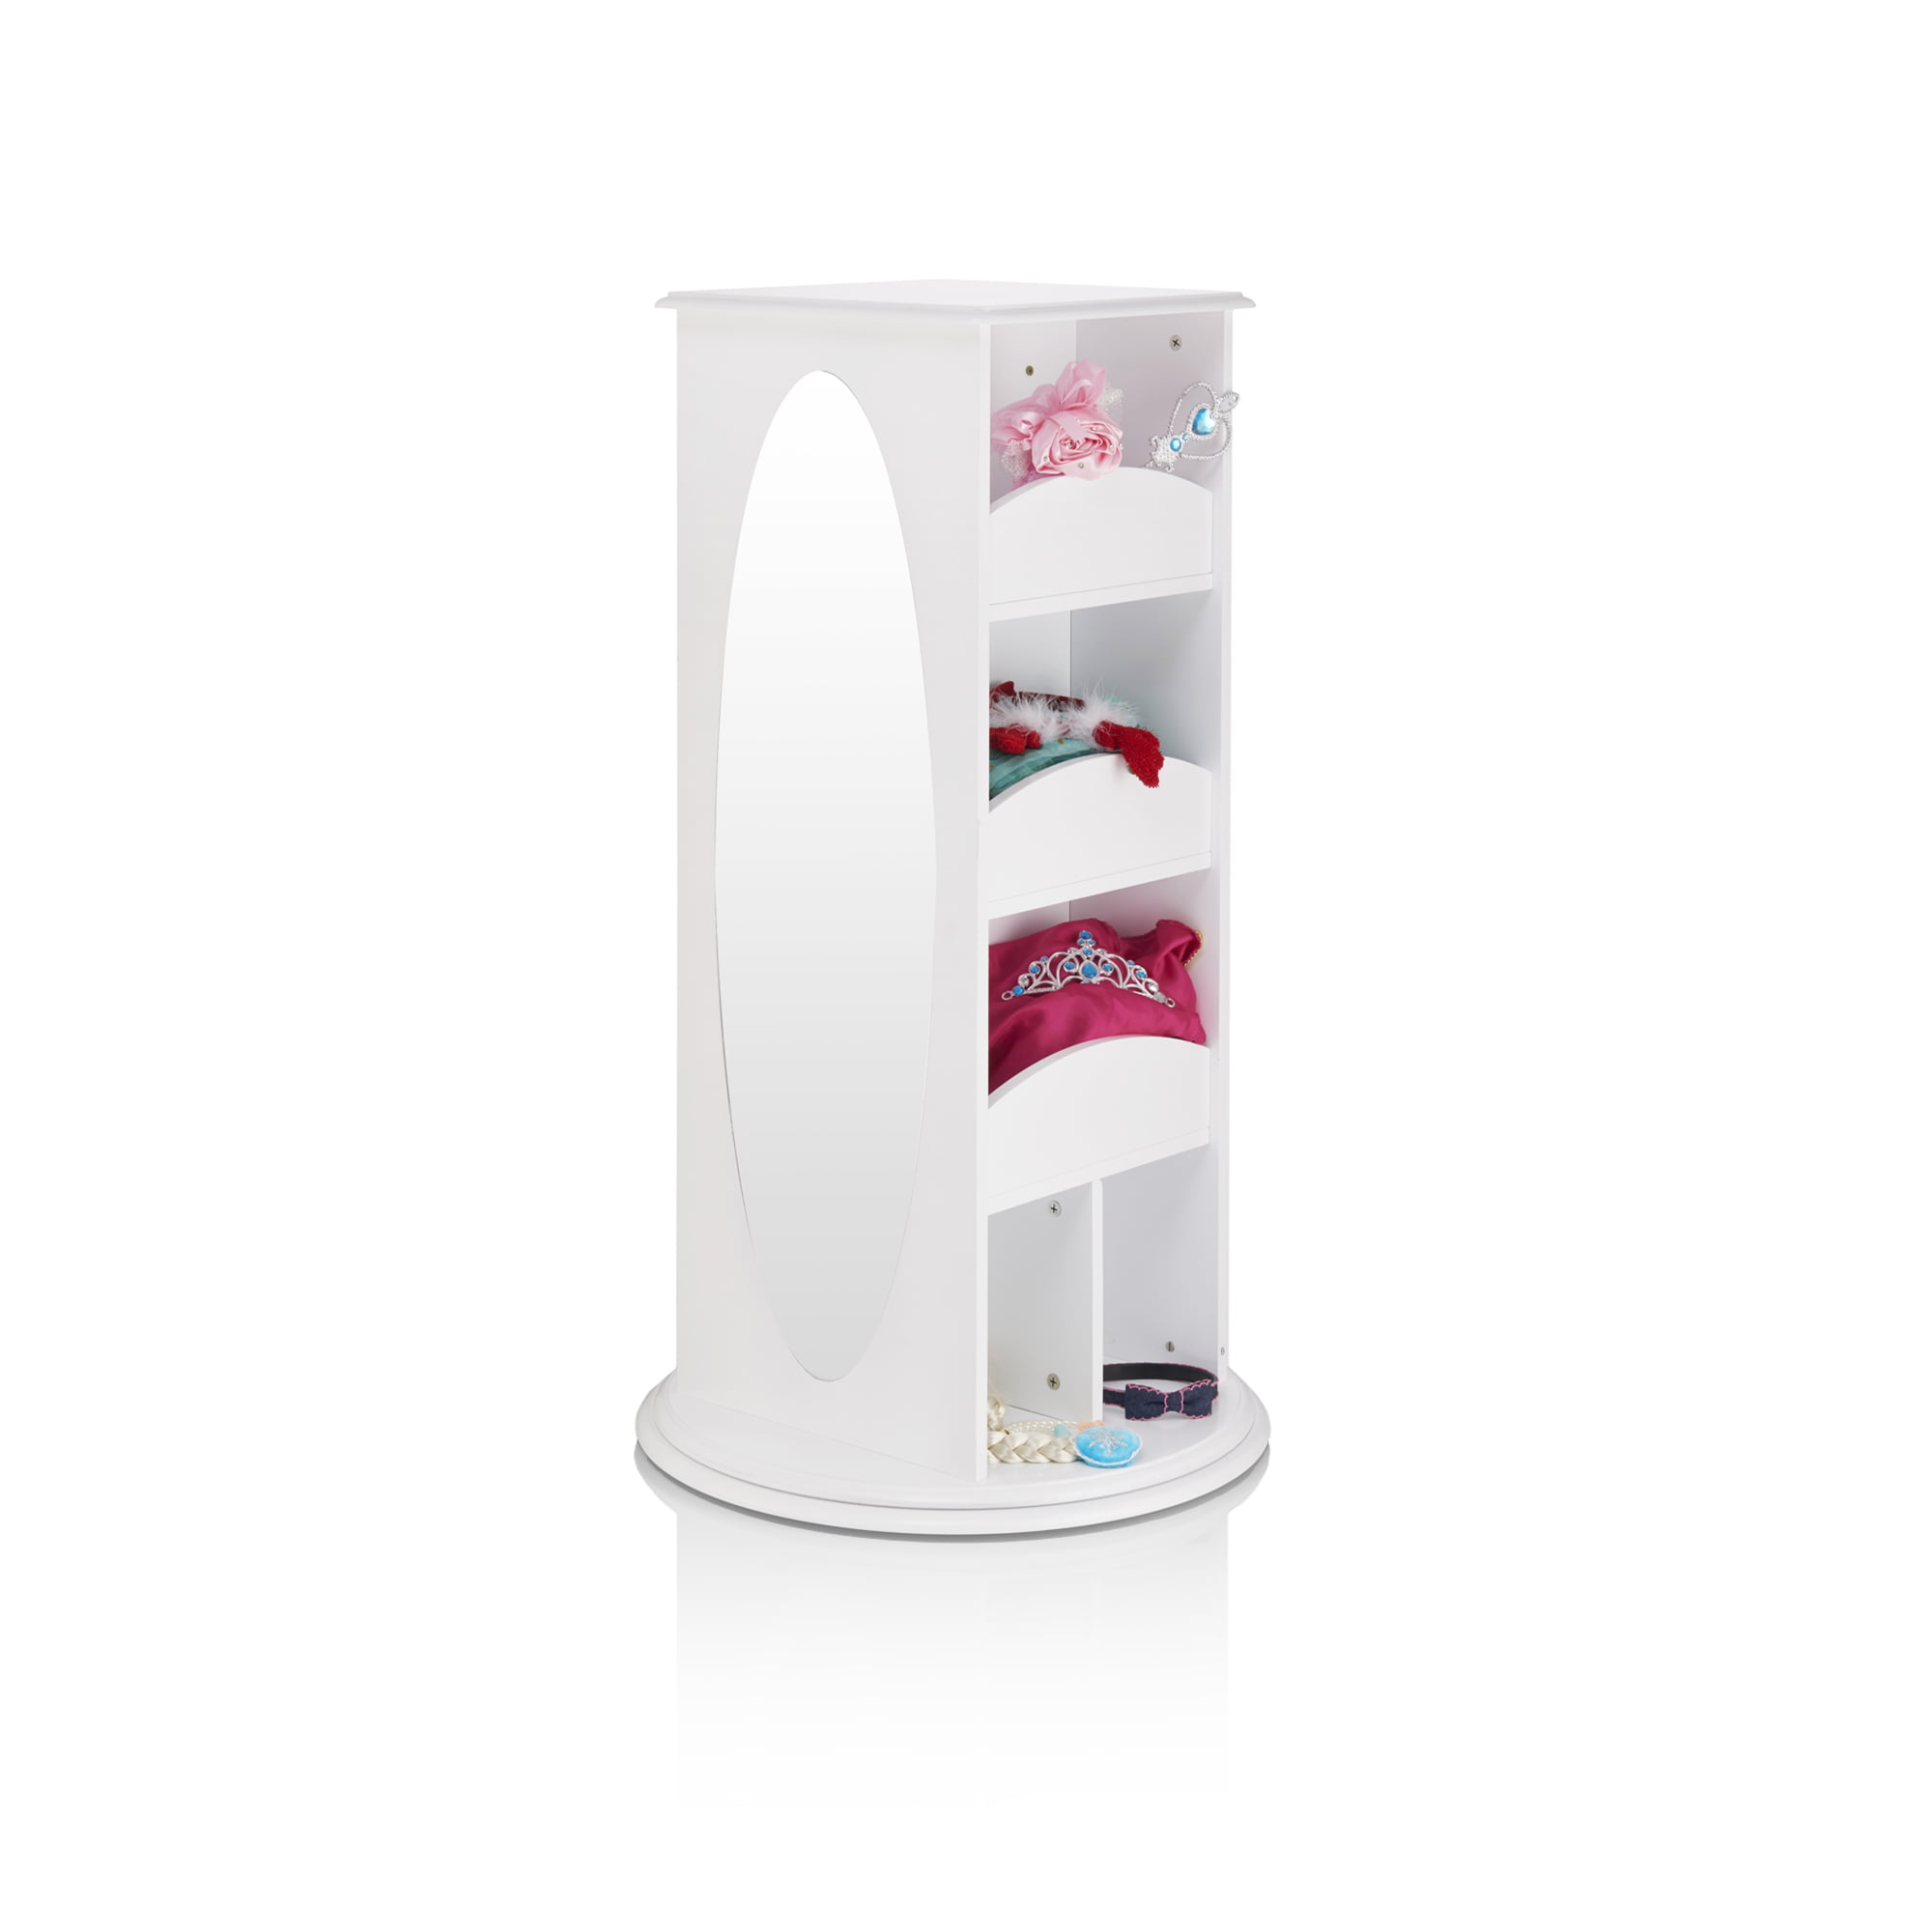 Rotating Dress-Up Storage Center White by Guidecraft